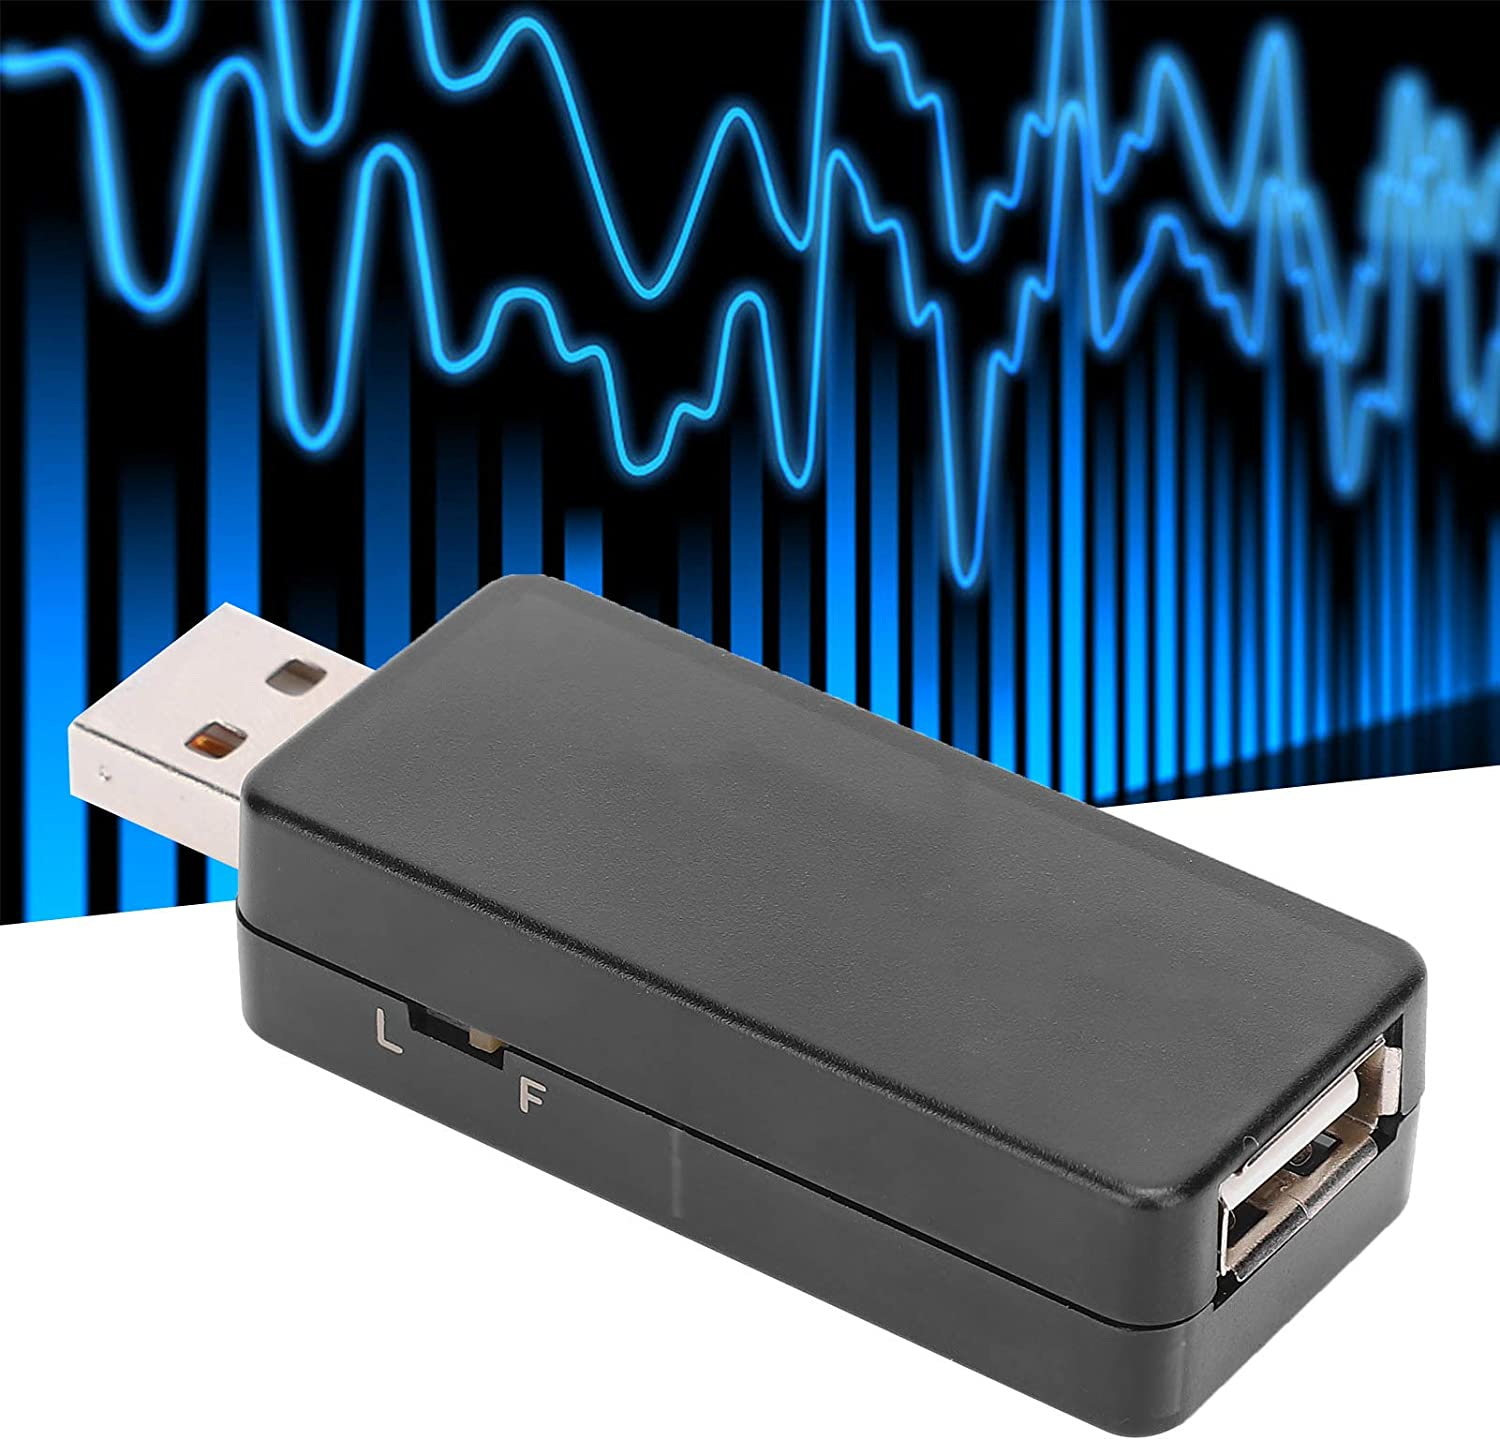 outlet USB Isolator New Free Shipping 12Mbps High Safety Factor Speed Digital Adjustable